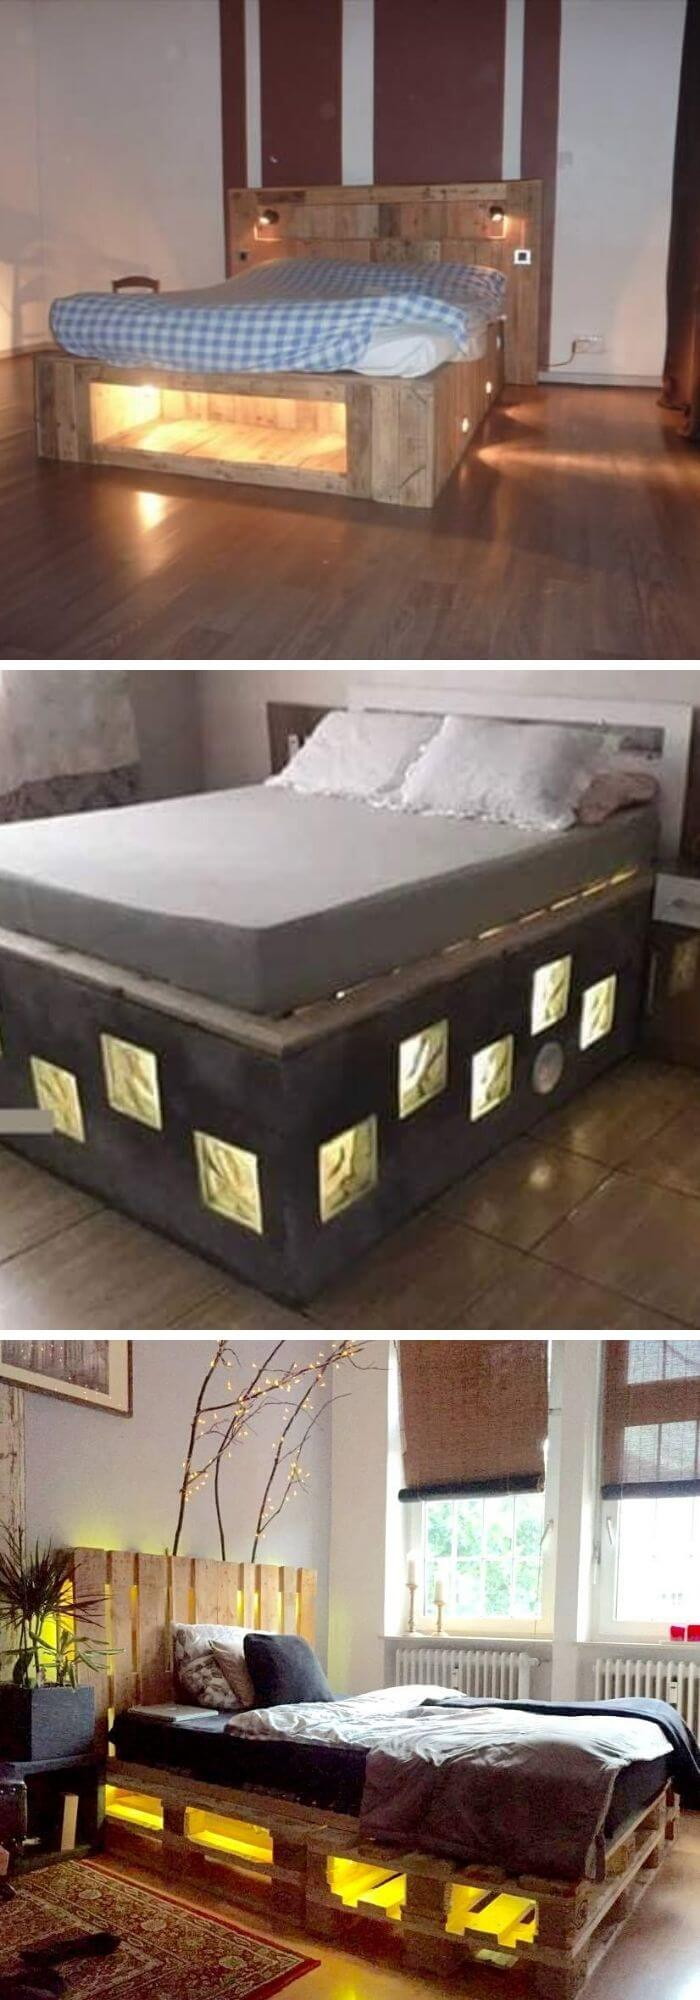 23 Clever Diy Bed Frame Ideas And Projects You Can Do In A Weekend